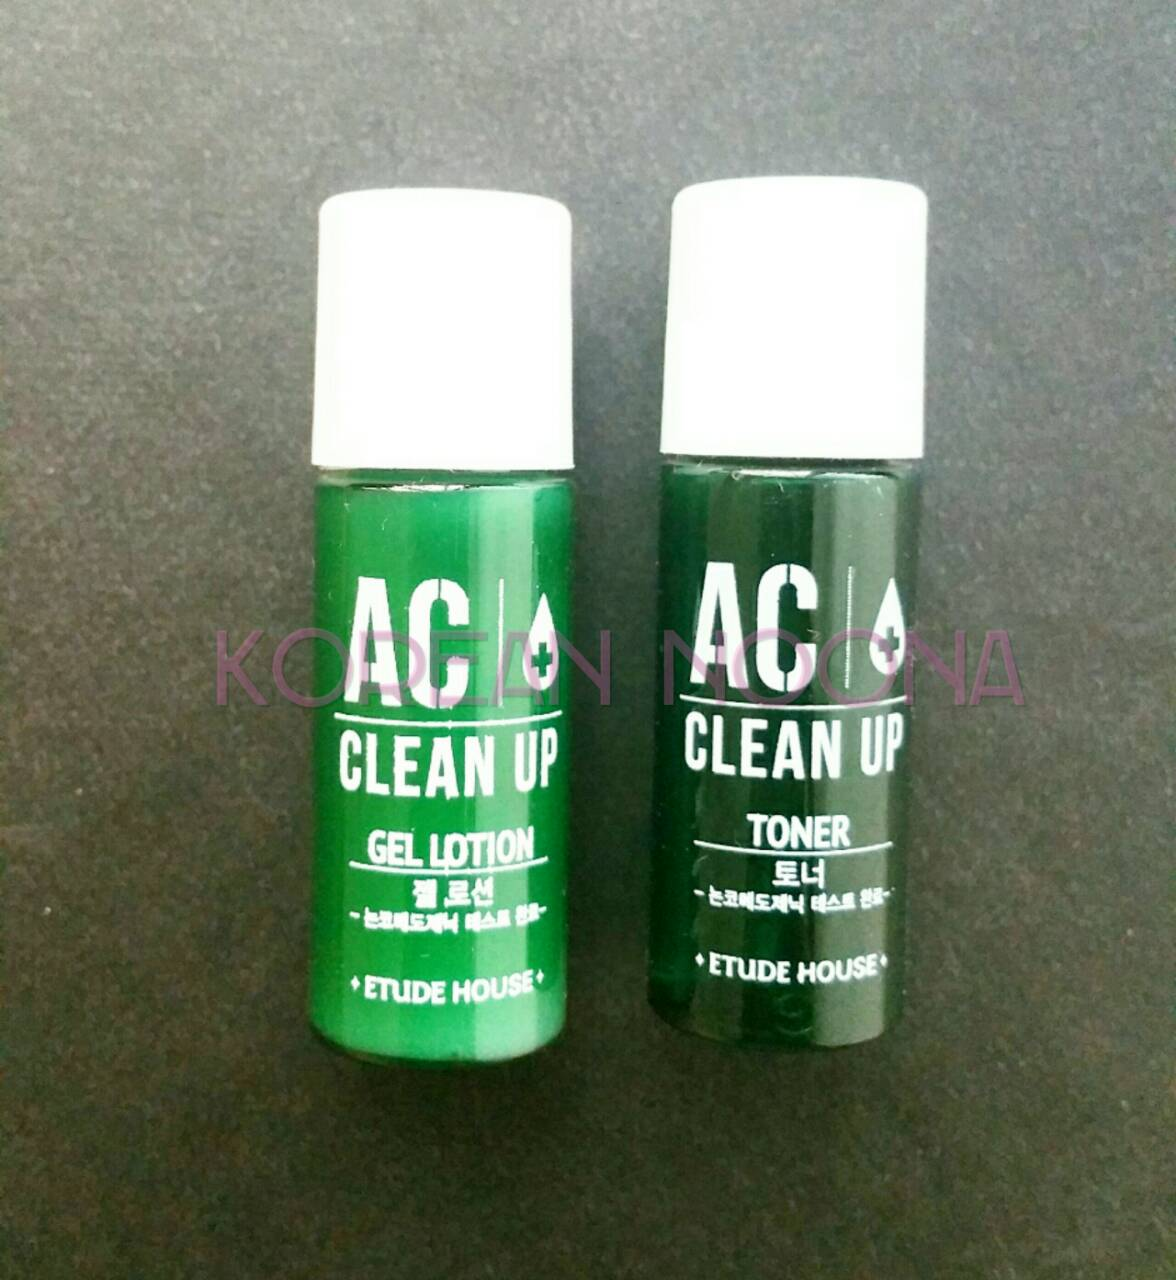 Jual ETUDE HOUSE AC Clean Up MINI SET (Lotion 5ml + Toner 5ml) - Korean Noona | Tokopedia